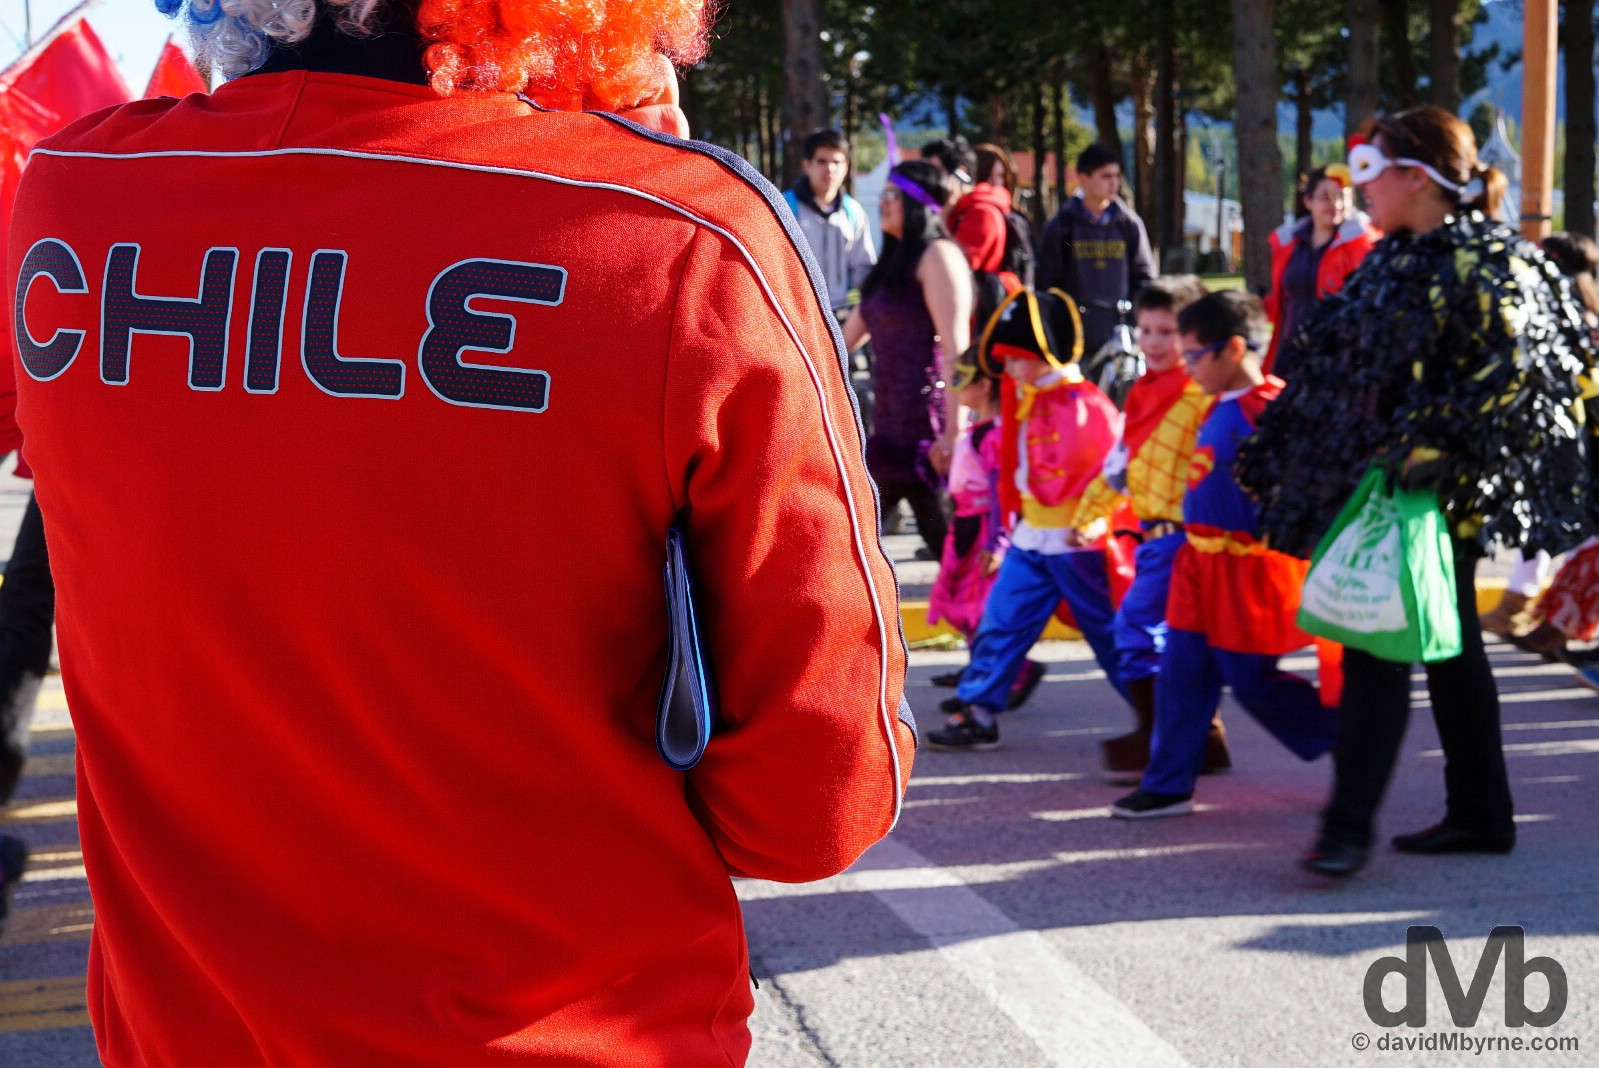 A Halloween parade by Plaza de Armas, Cochrane, Aysen, Chile. October 29, 2015.